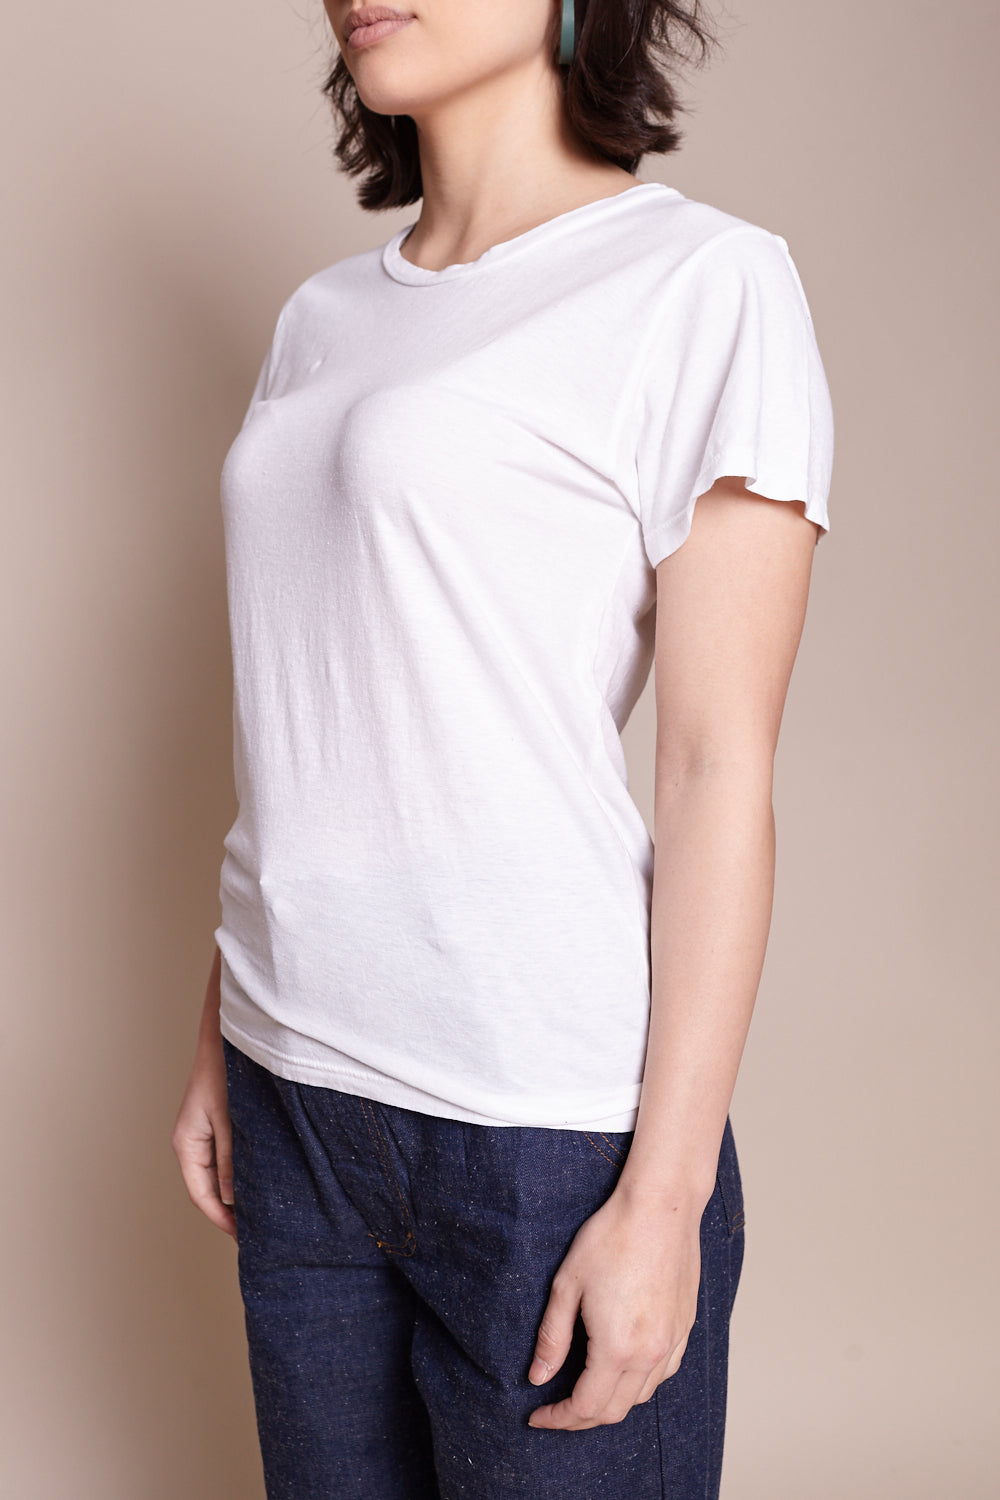 Ojai Tee in Optic White